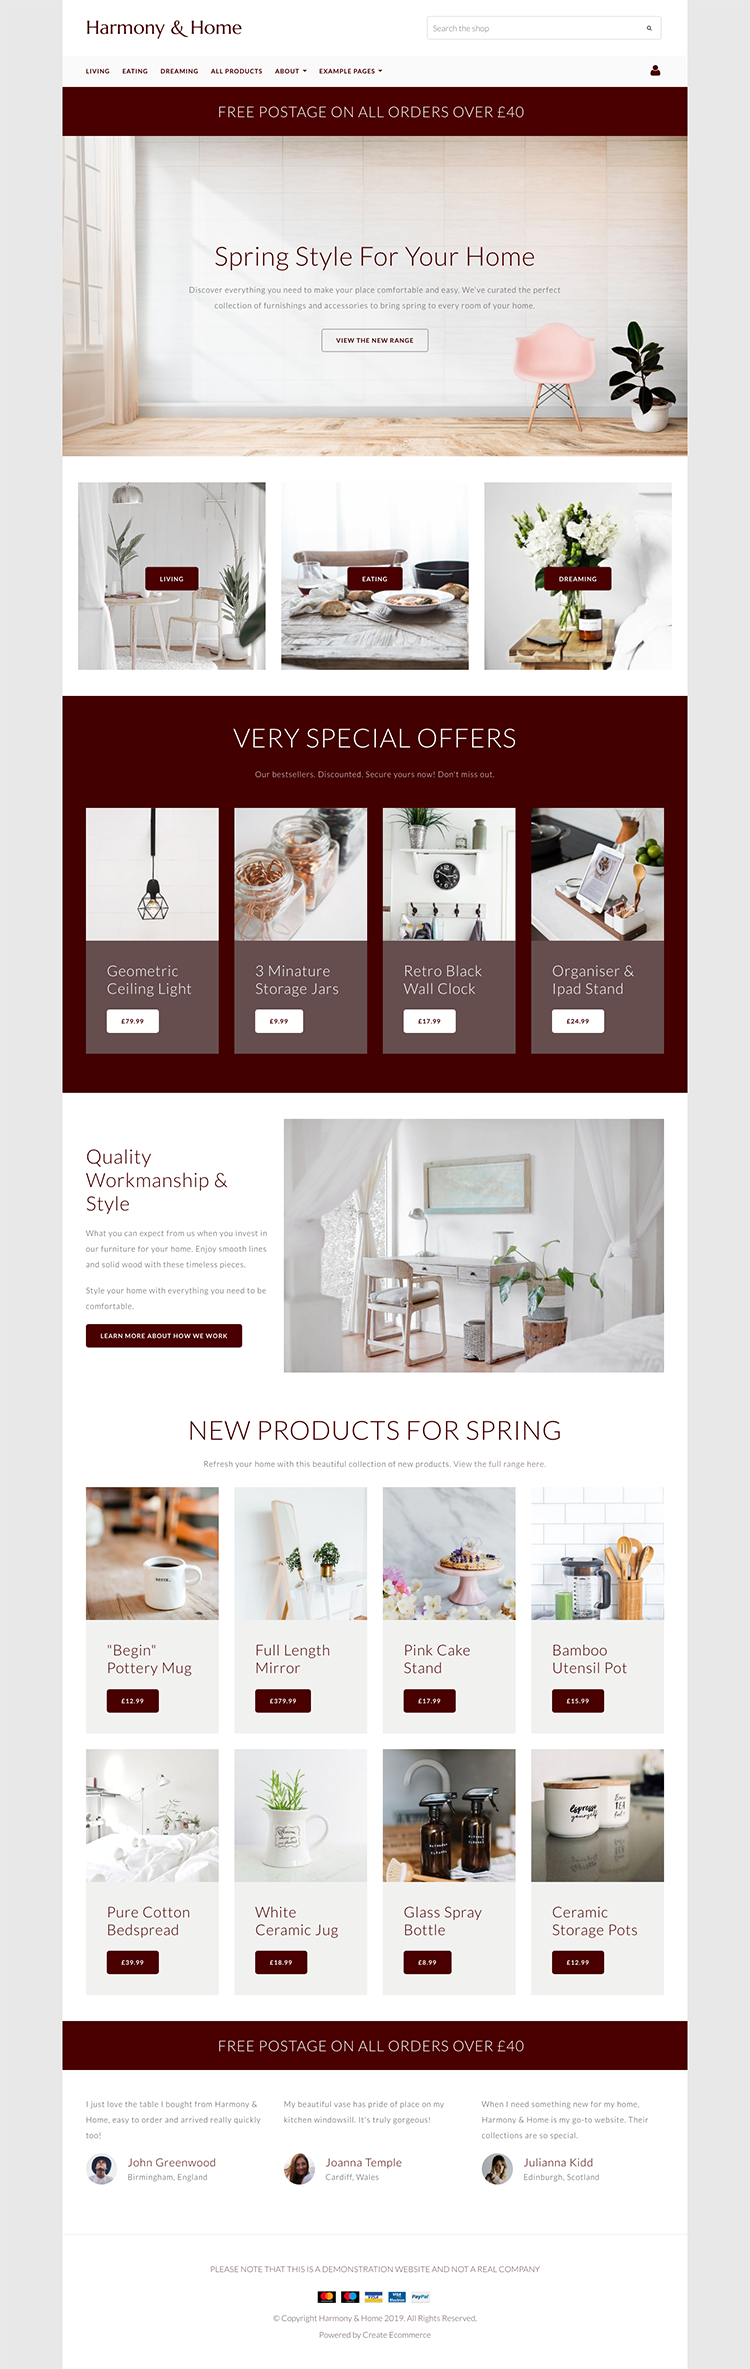 Harmony & Home Spring Home Page Example